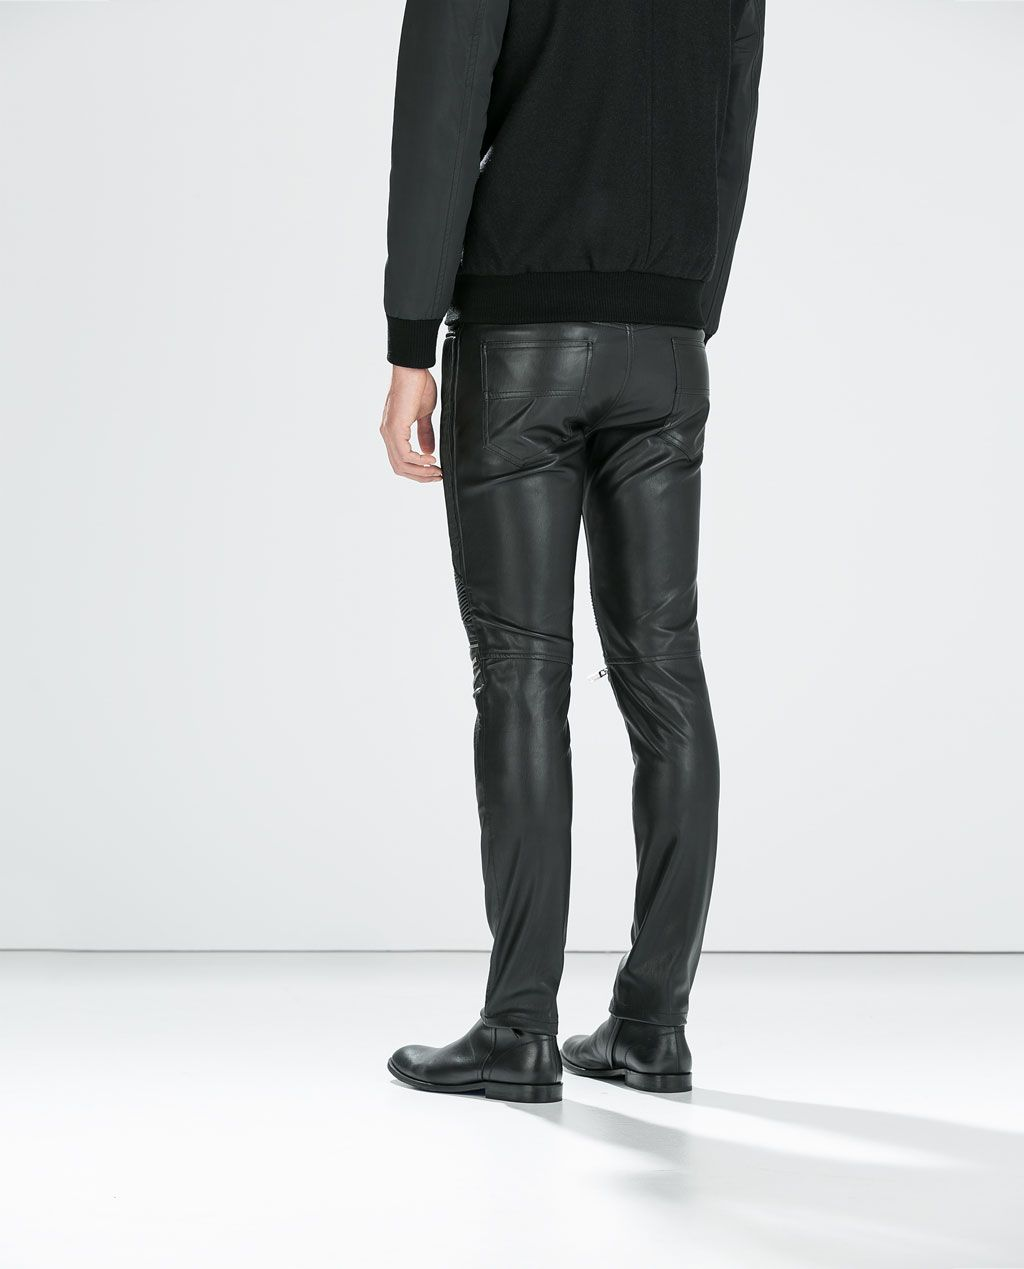 da131670 ZARA - MAN - SYNTHETIC LEATHER TROUSERS WITH ZIPS | Men looks ...